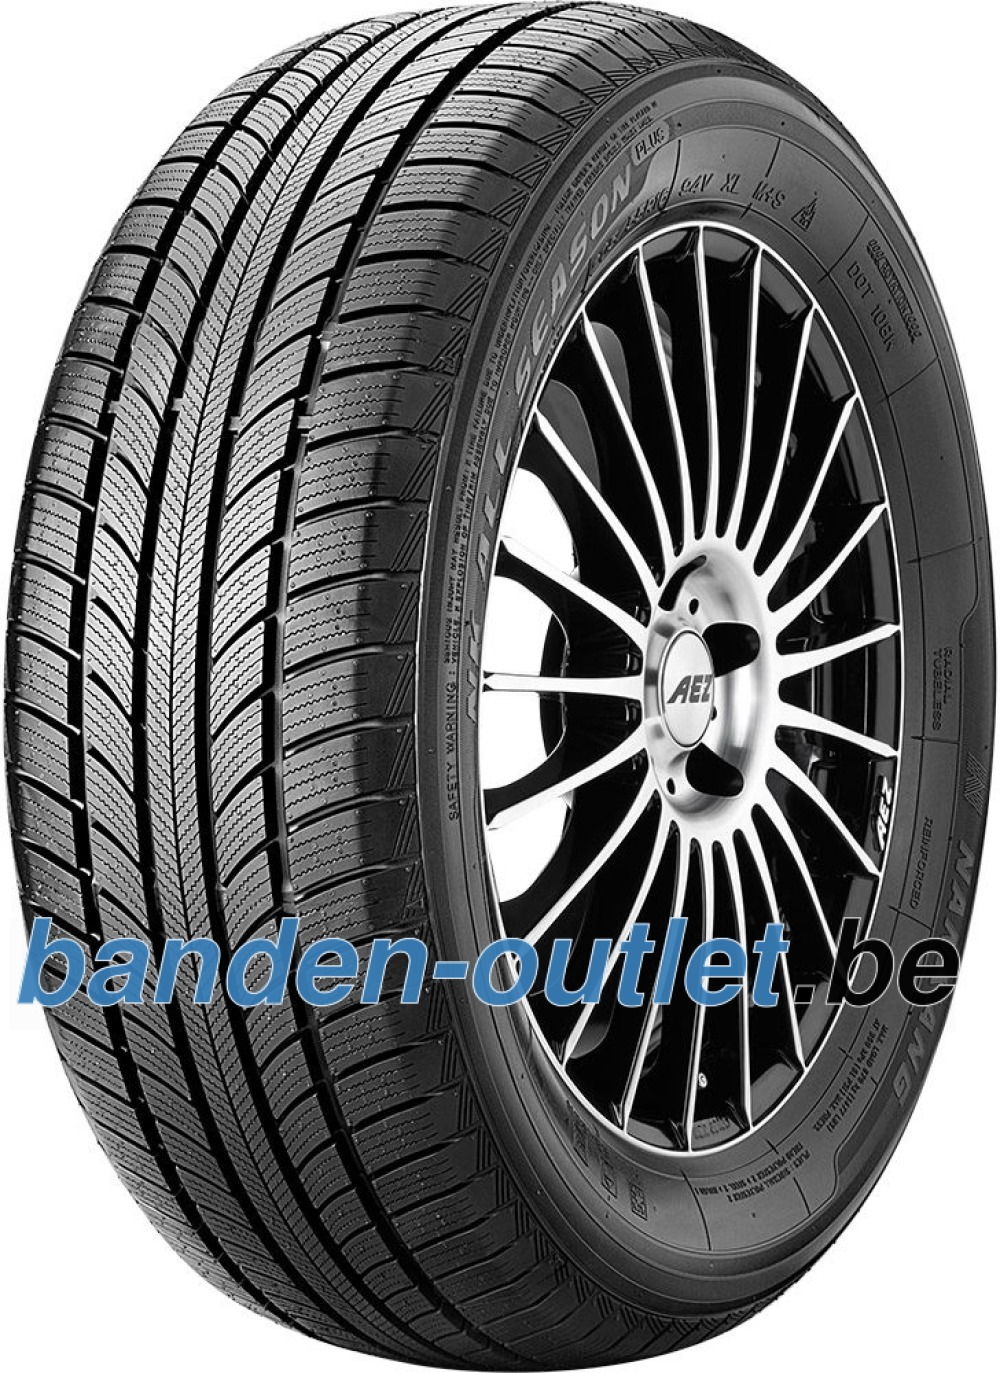 Nankang All Season Plus N-607+ ( 195/55 R16 87V )